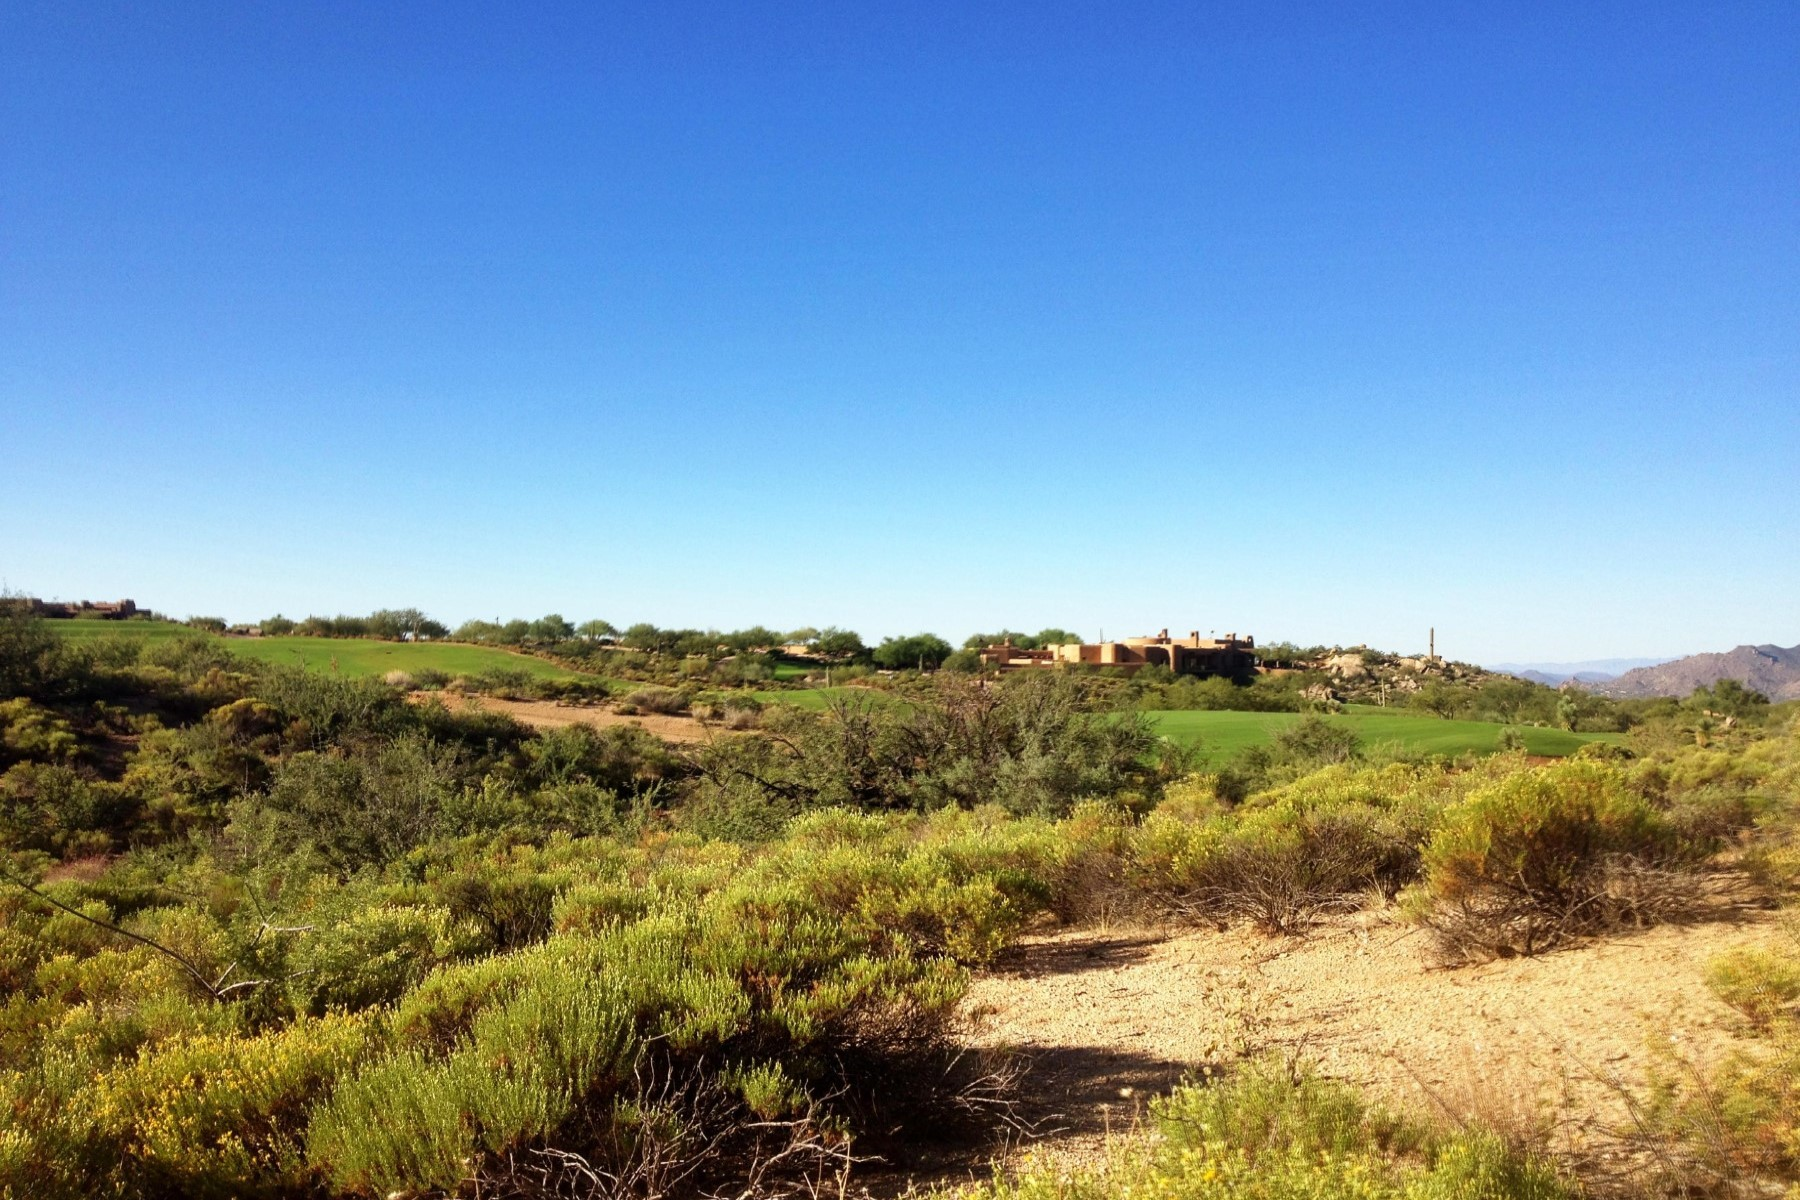 토지 용 매매 에 Saguaro Forest Golf Course Homesite 41248 N 96th St #121, Scottsdale, 아리조나, 85262 미국